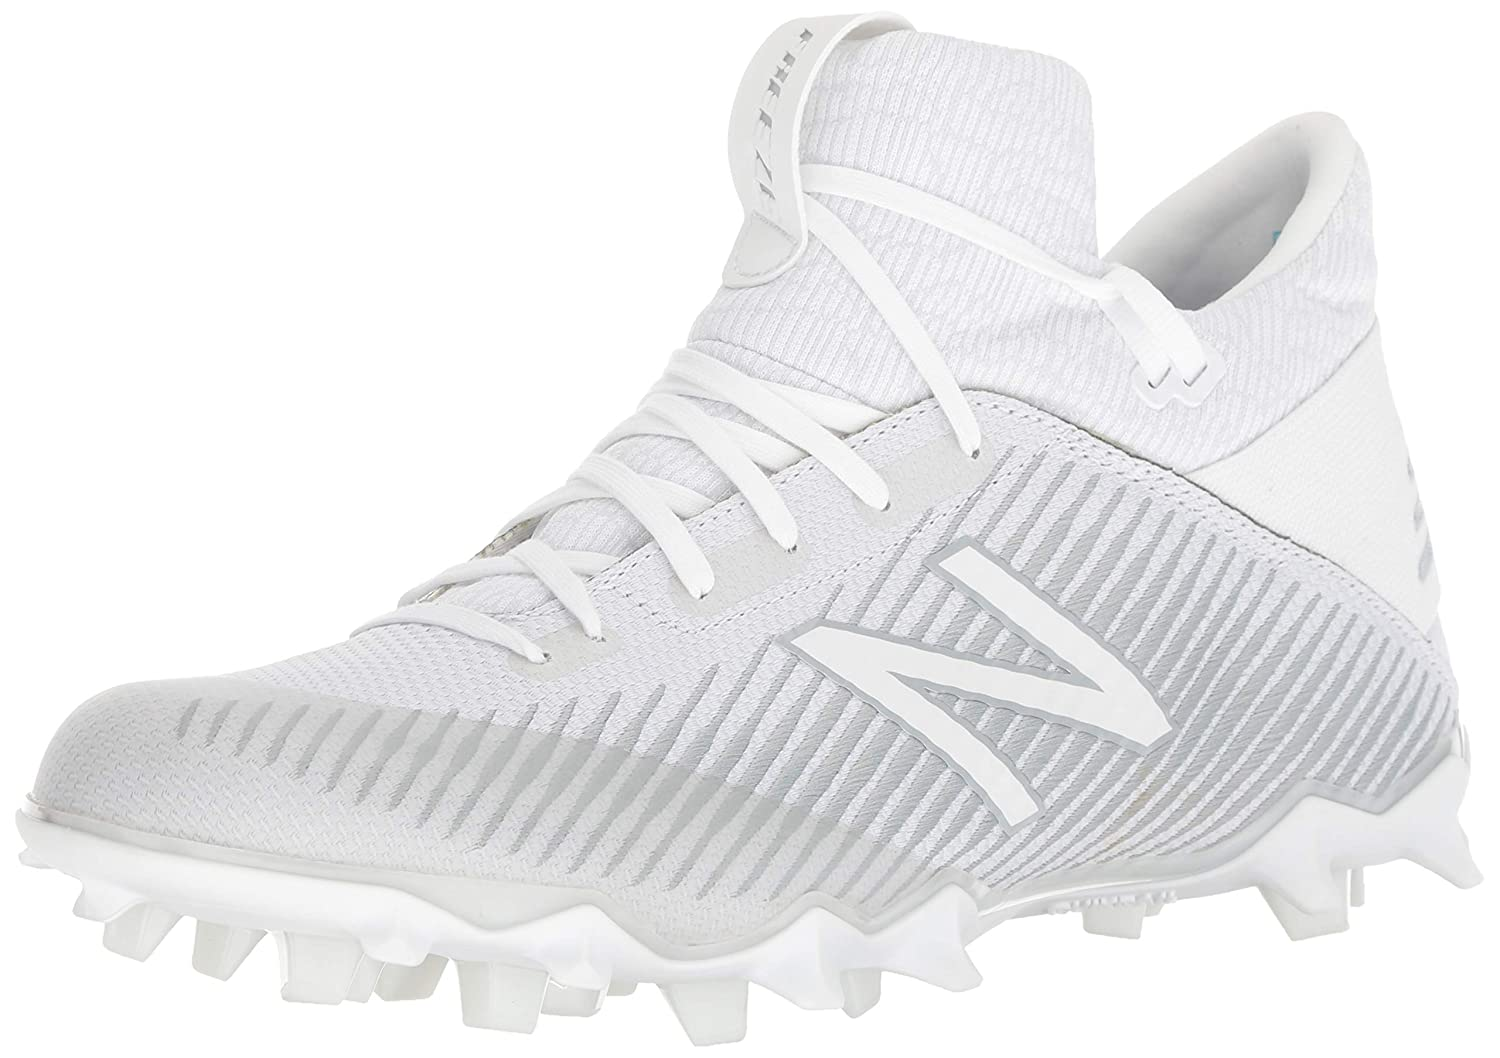 New Balance Womens Recovery v1 Transition Lacrosse Shoe NB18